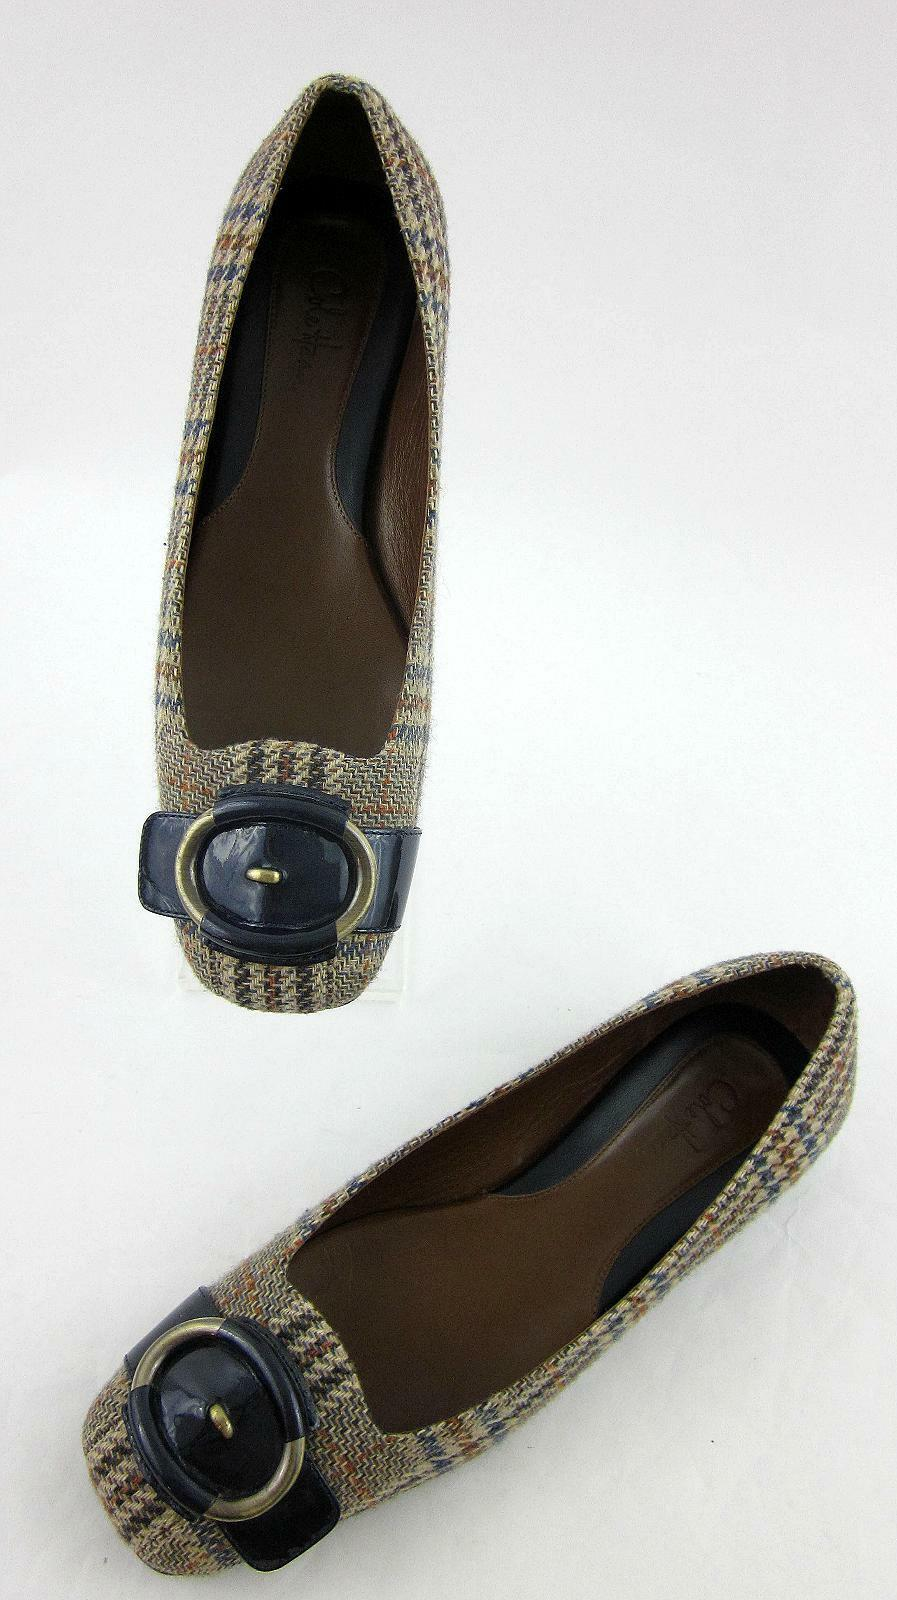 Cole Haan Air donna donna donna Flats Plaid Fabric blu Patent Strap Sz 7B 1fcd28